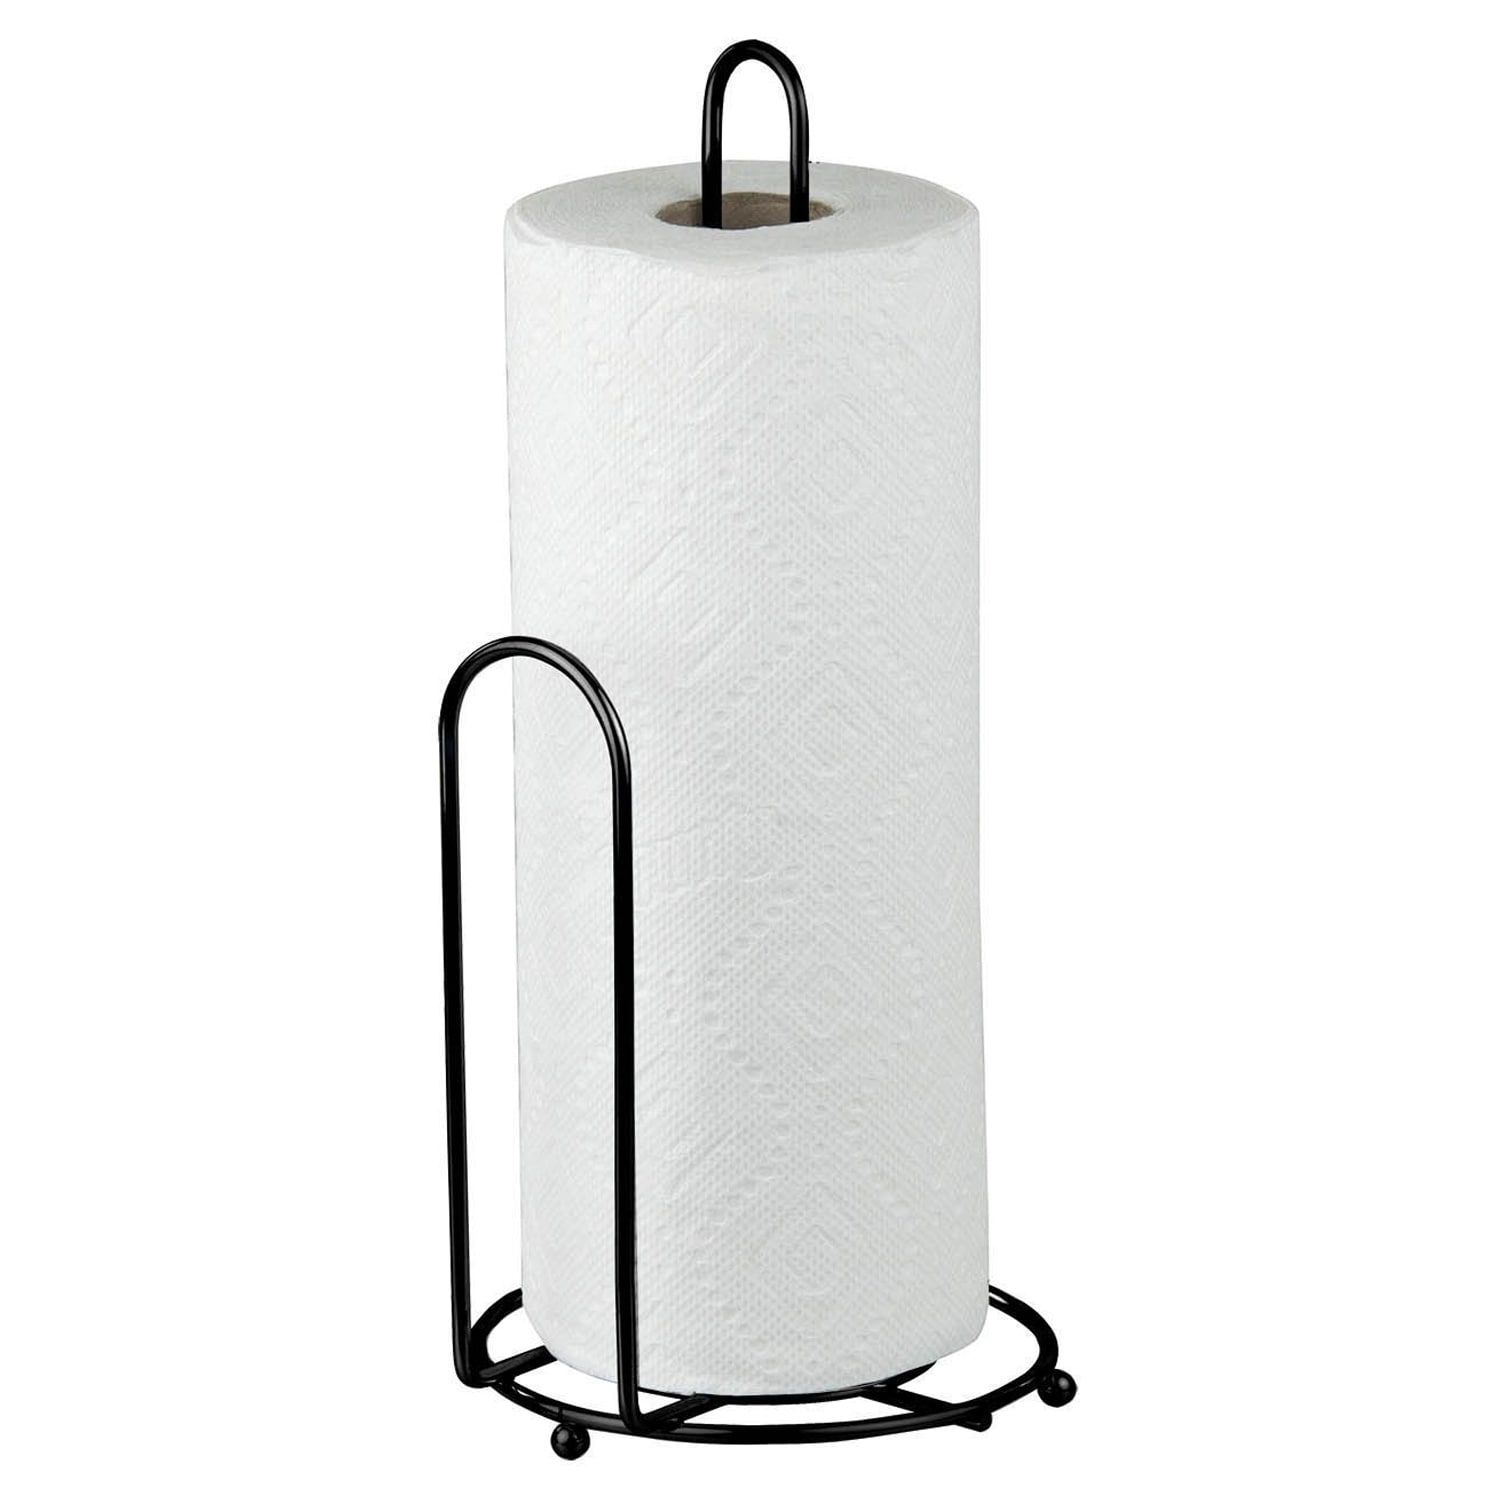 Sweet Home Collection Black Countertop Paper Towel Holder On Free Shipping Orders Over 45 19548770